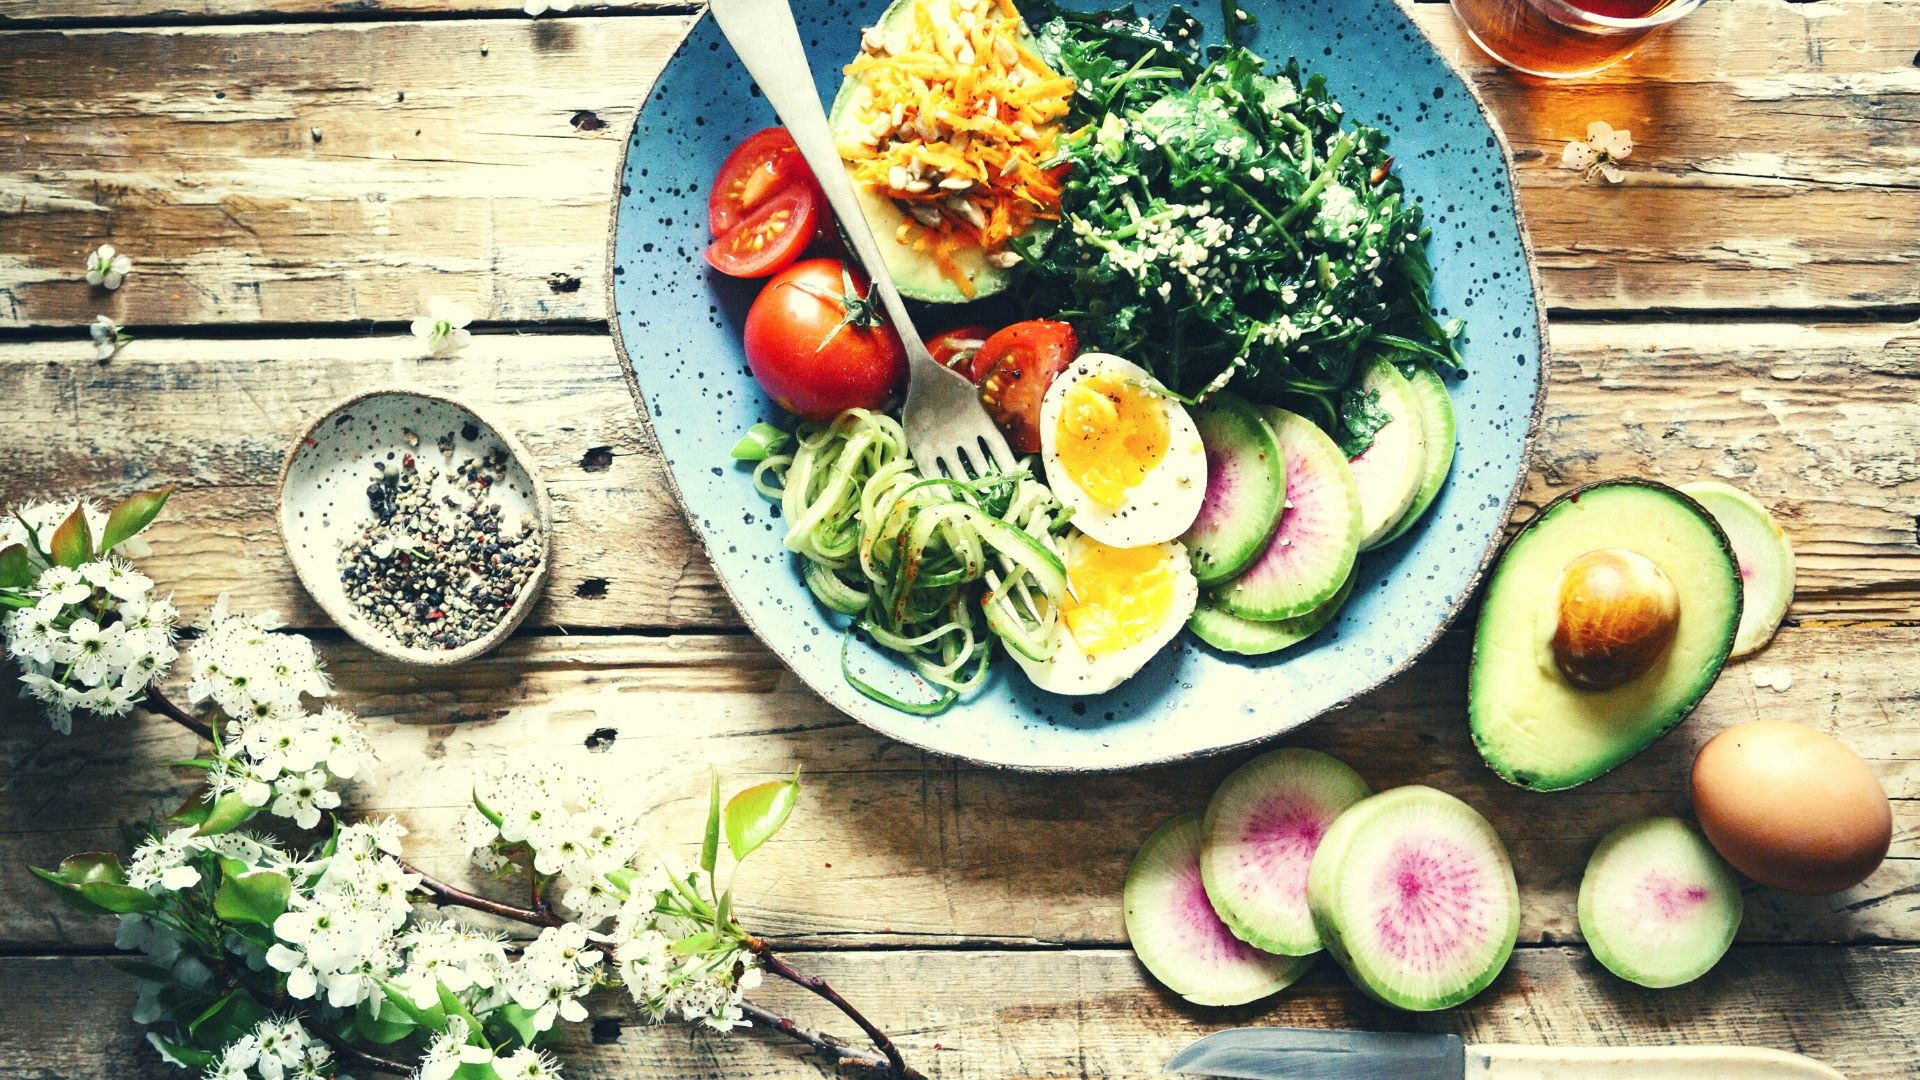 Sustainability and Food. What is the Healthiest and Most Sustainable Diet Today?